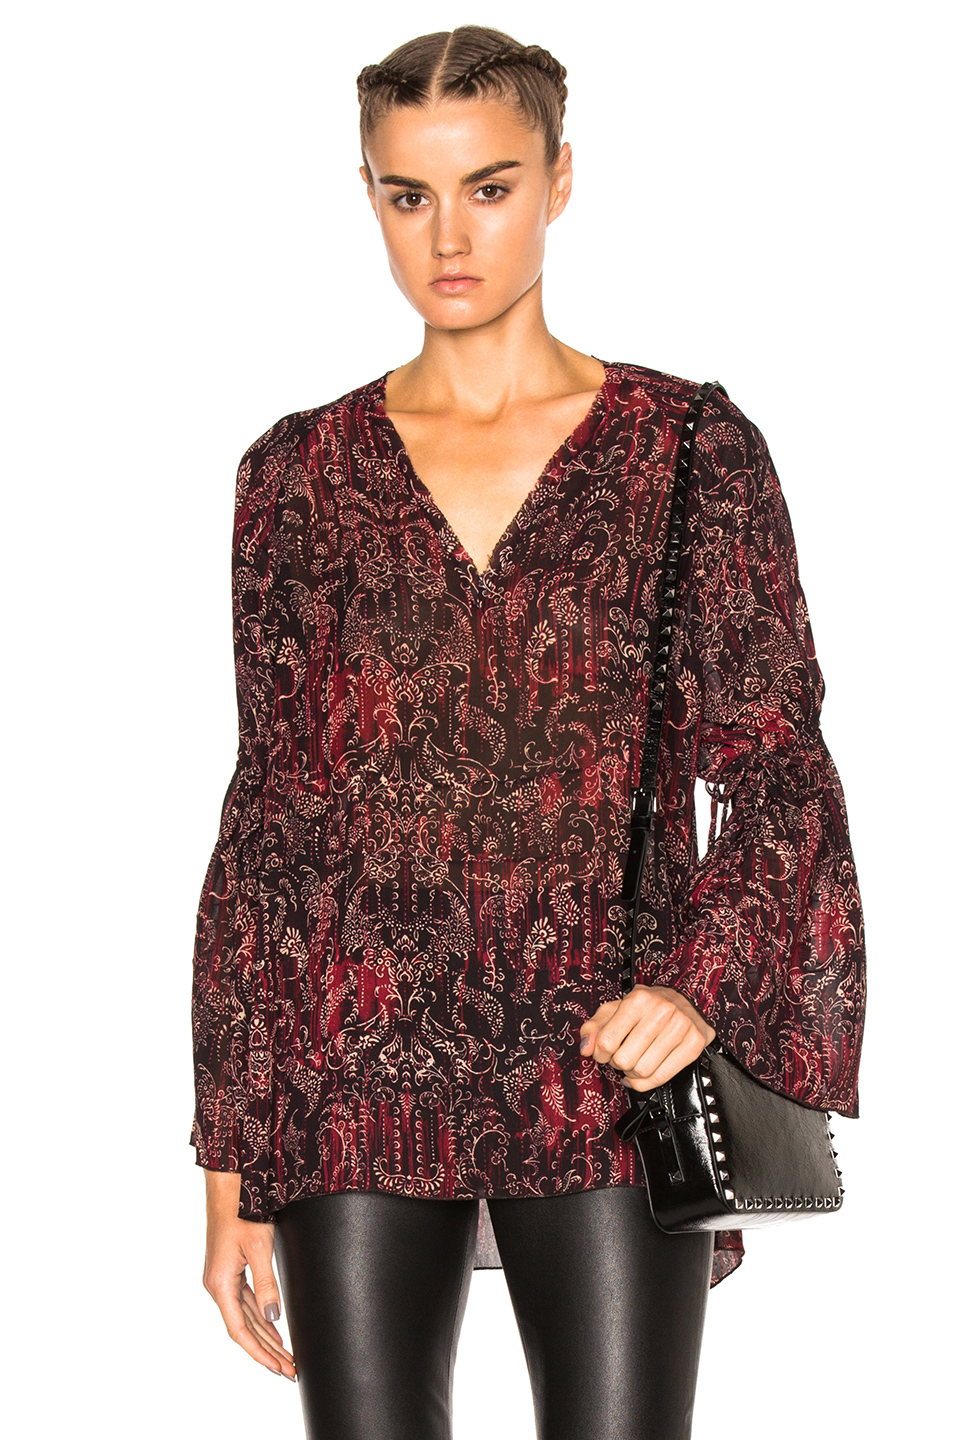 IRO Aga Top in Red,Purple,Abstract